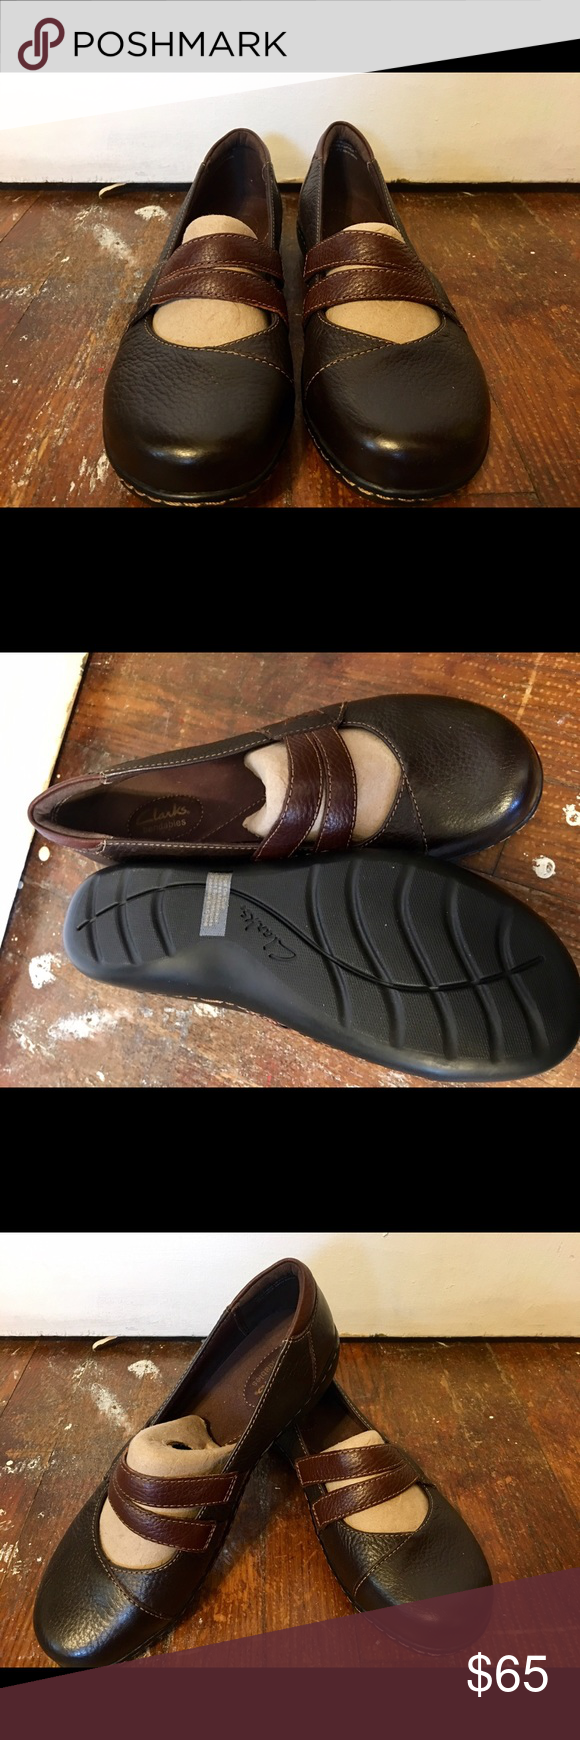 Still Has Inserts To Keep Shape Dark Brown Leather Two Straps Comfortable Insoles Perfect Work Shoe Clarks Shoes Flats Loafers